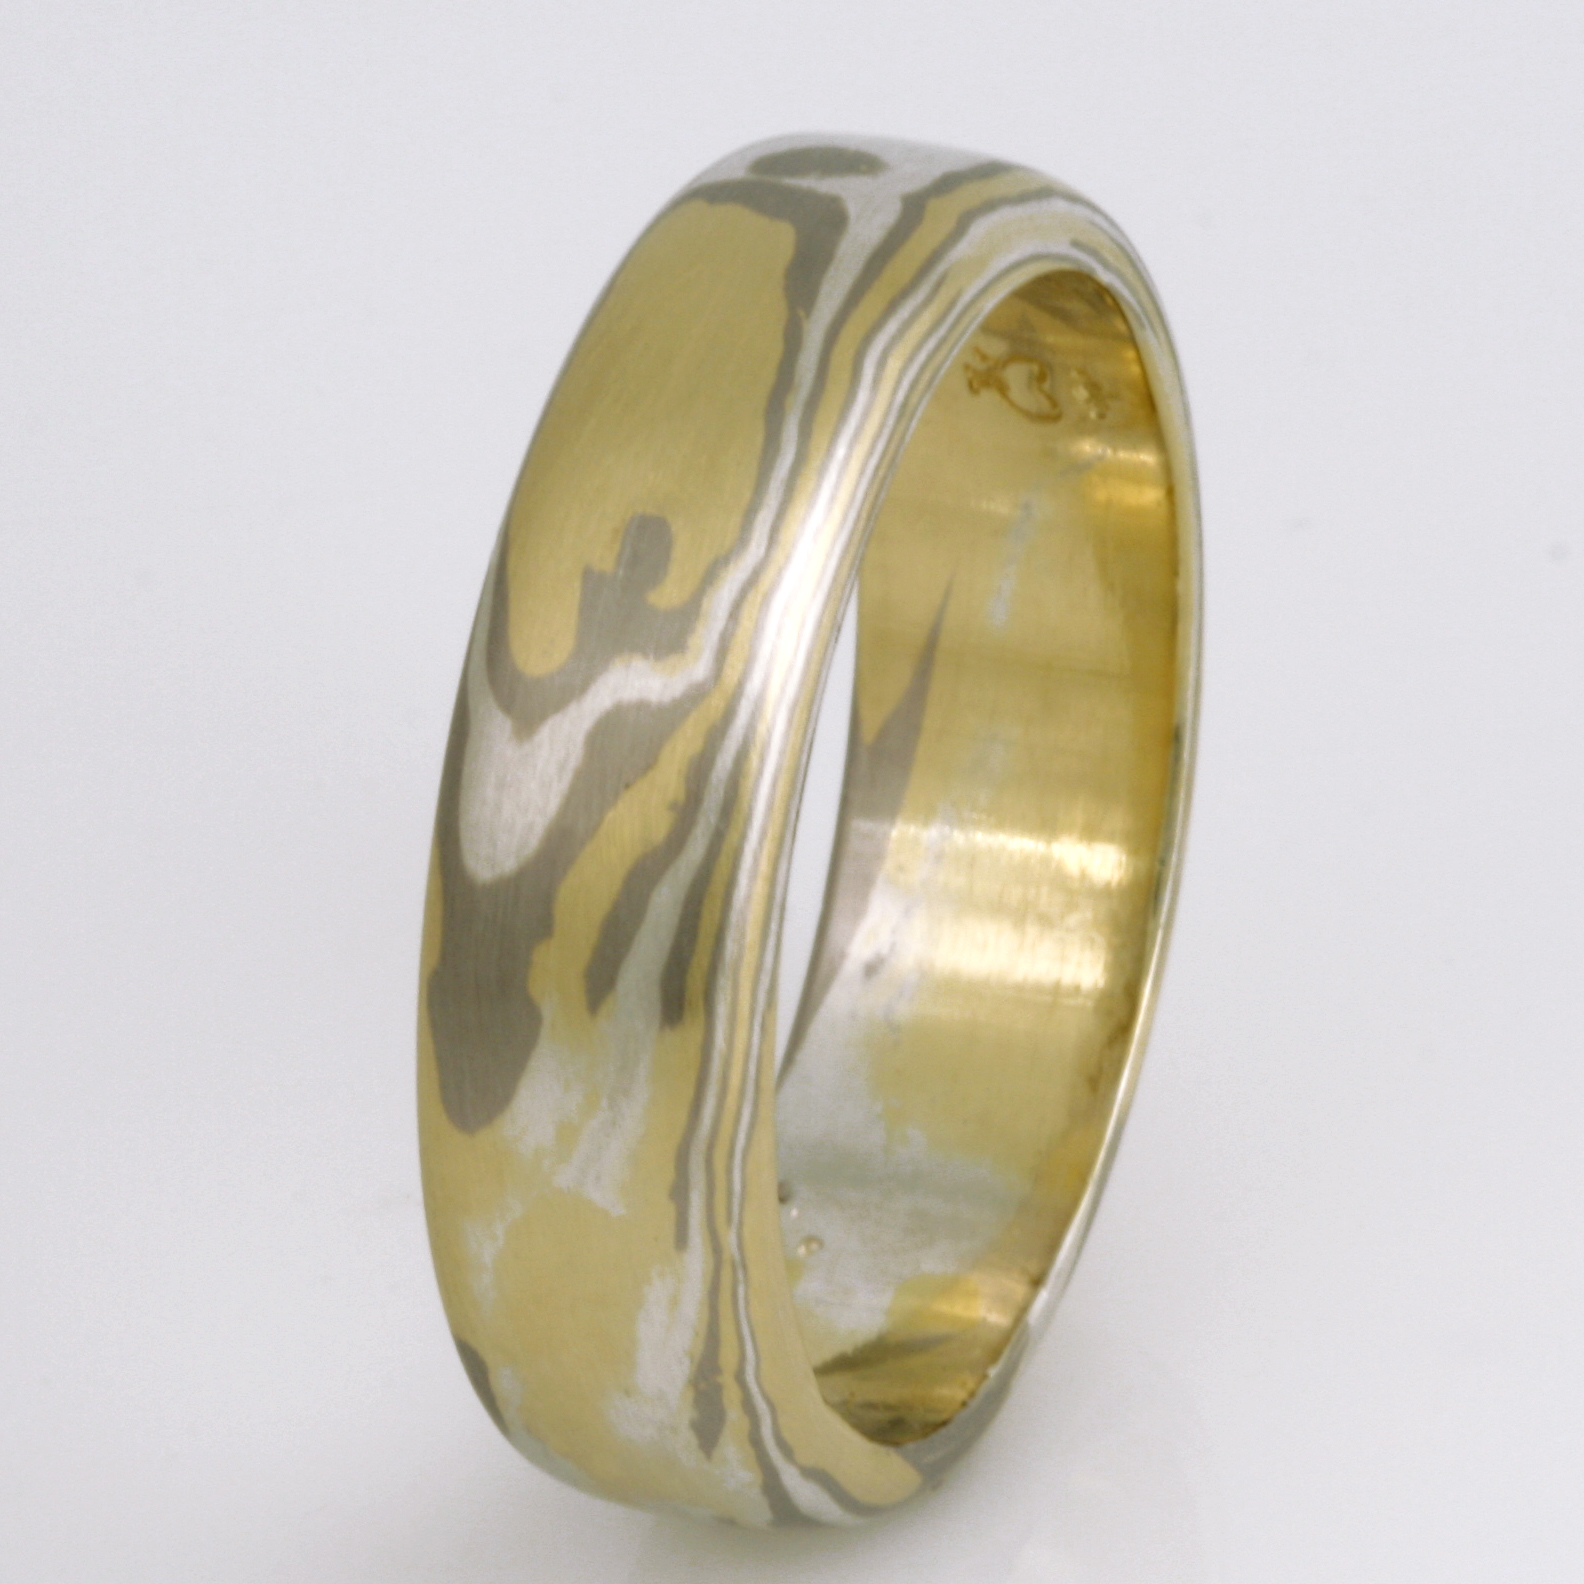 Handmade gents 18ct green gold, white gold and sterling silver Mokume Gane wedding ring